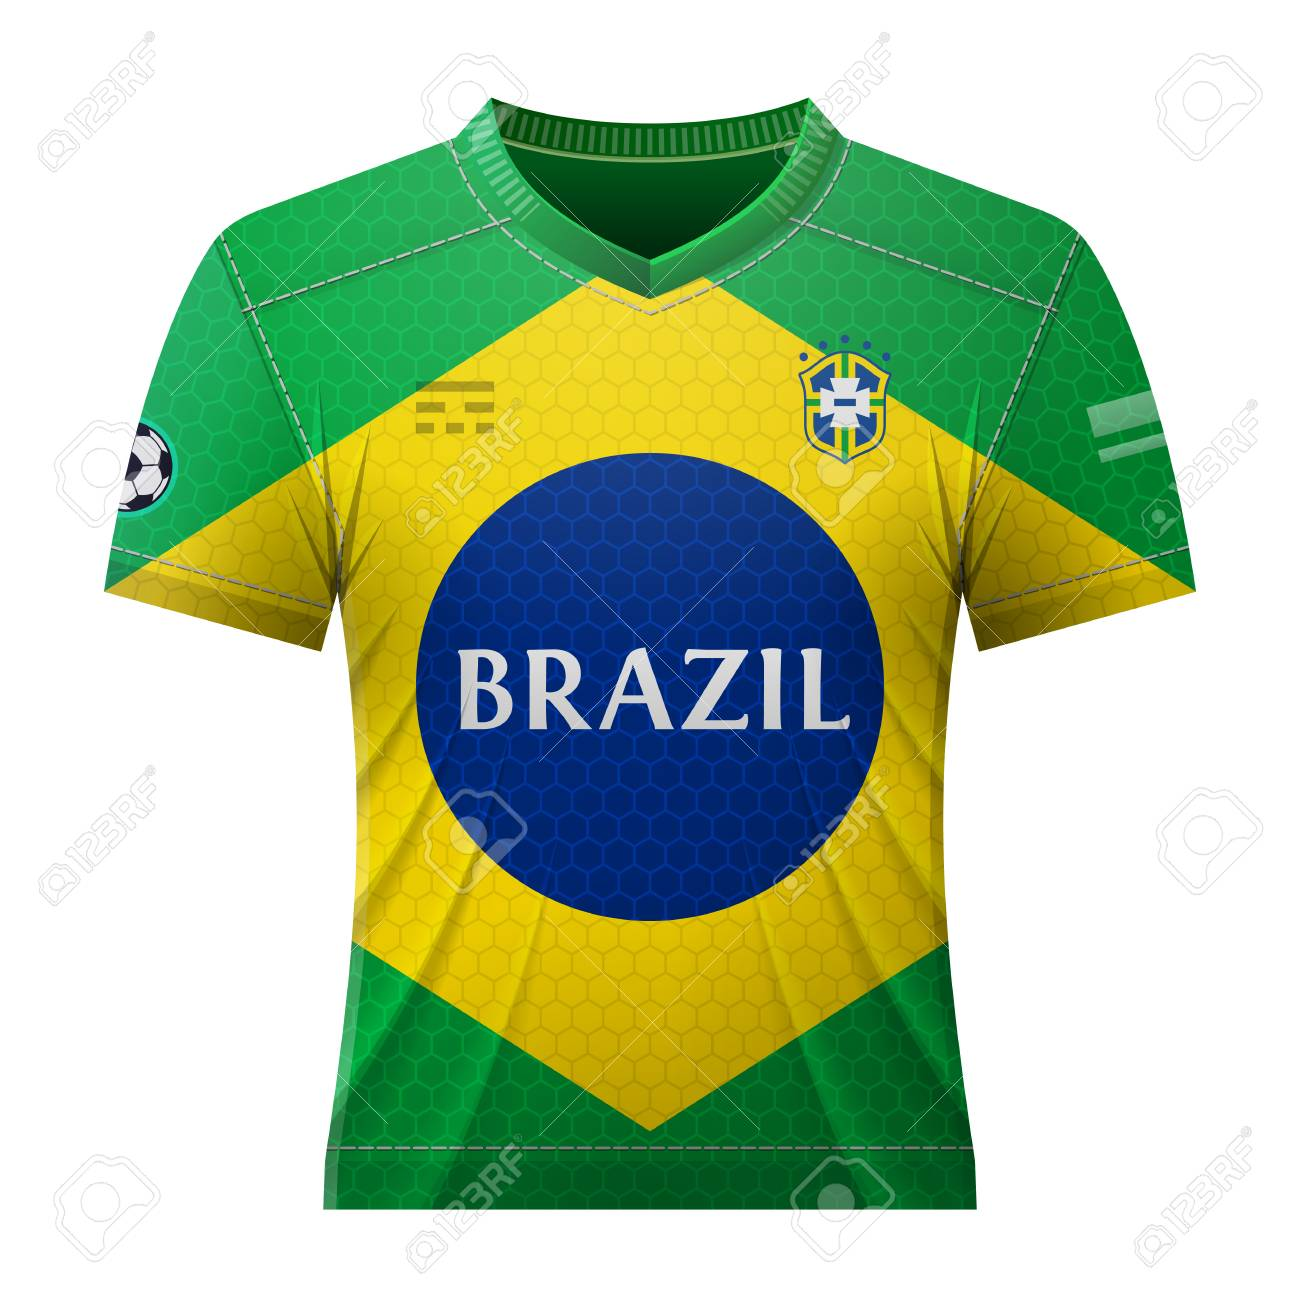 Soccer shirt in colors of brazilian flag. National jersey for football team  of Brazil. e094aab83